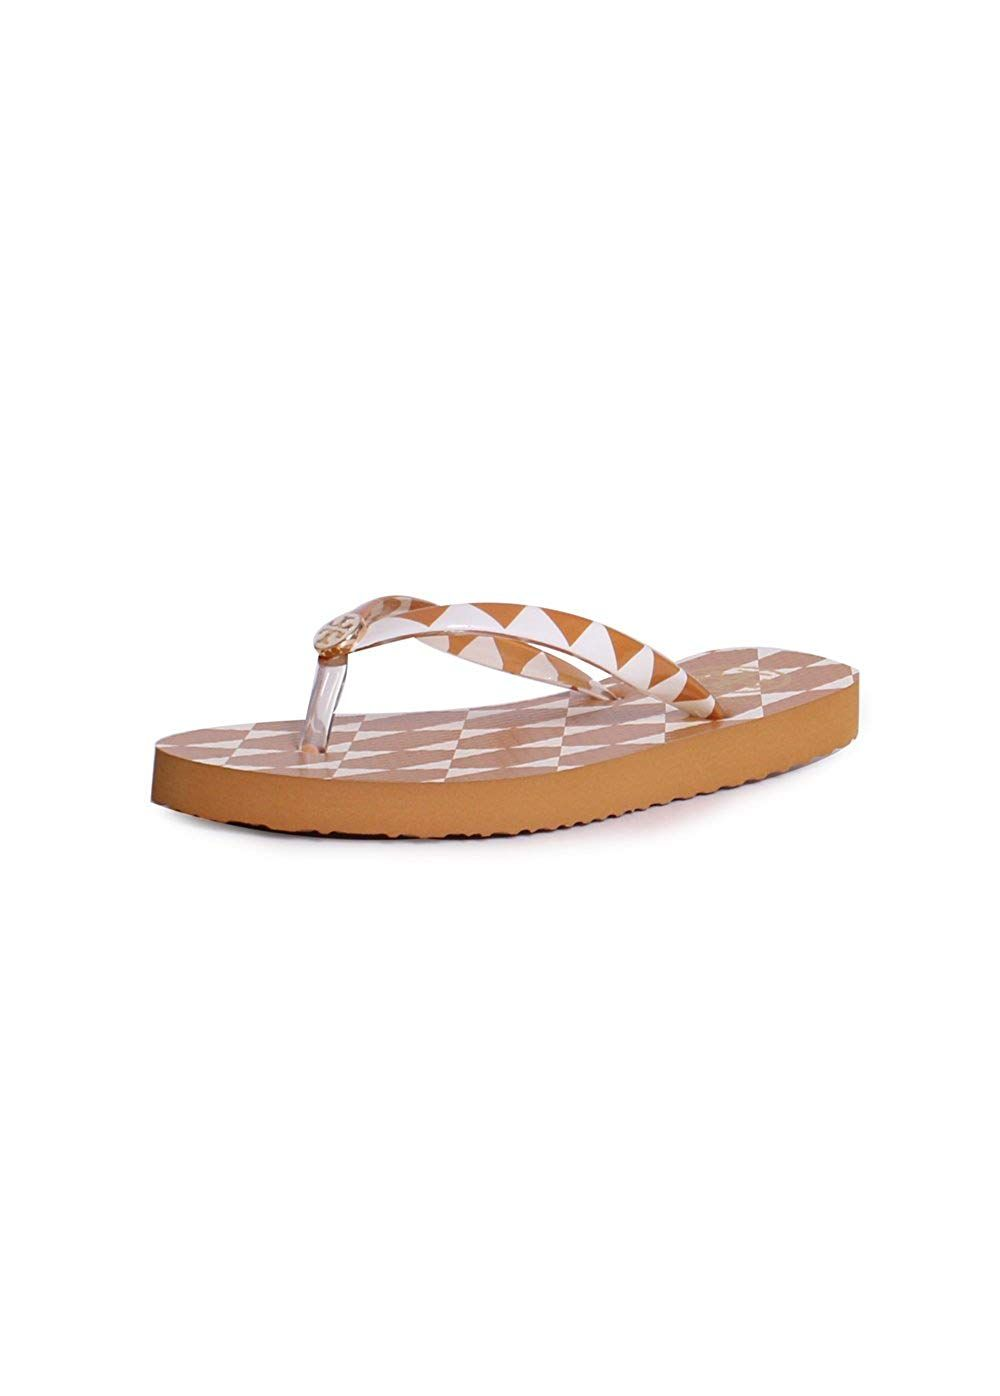 29bc0263f3a93 Tory Burch Thin Printed Flip Flop Sandals in Gold Diamond -- Very ...